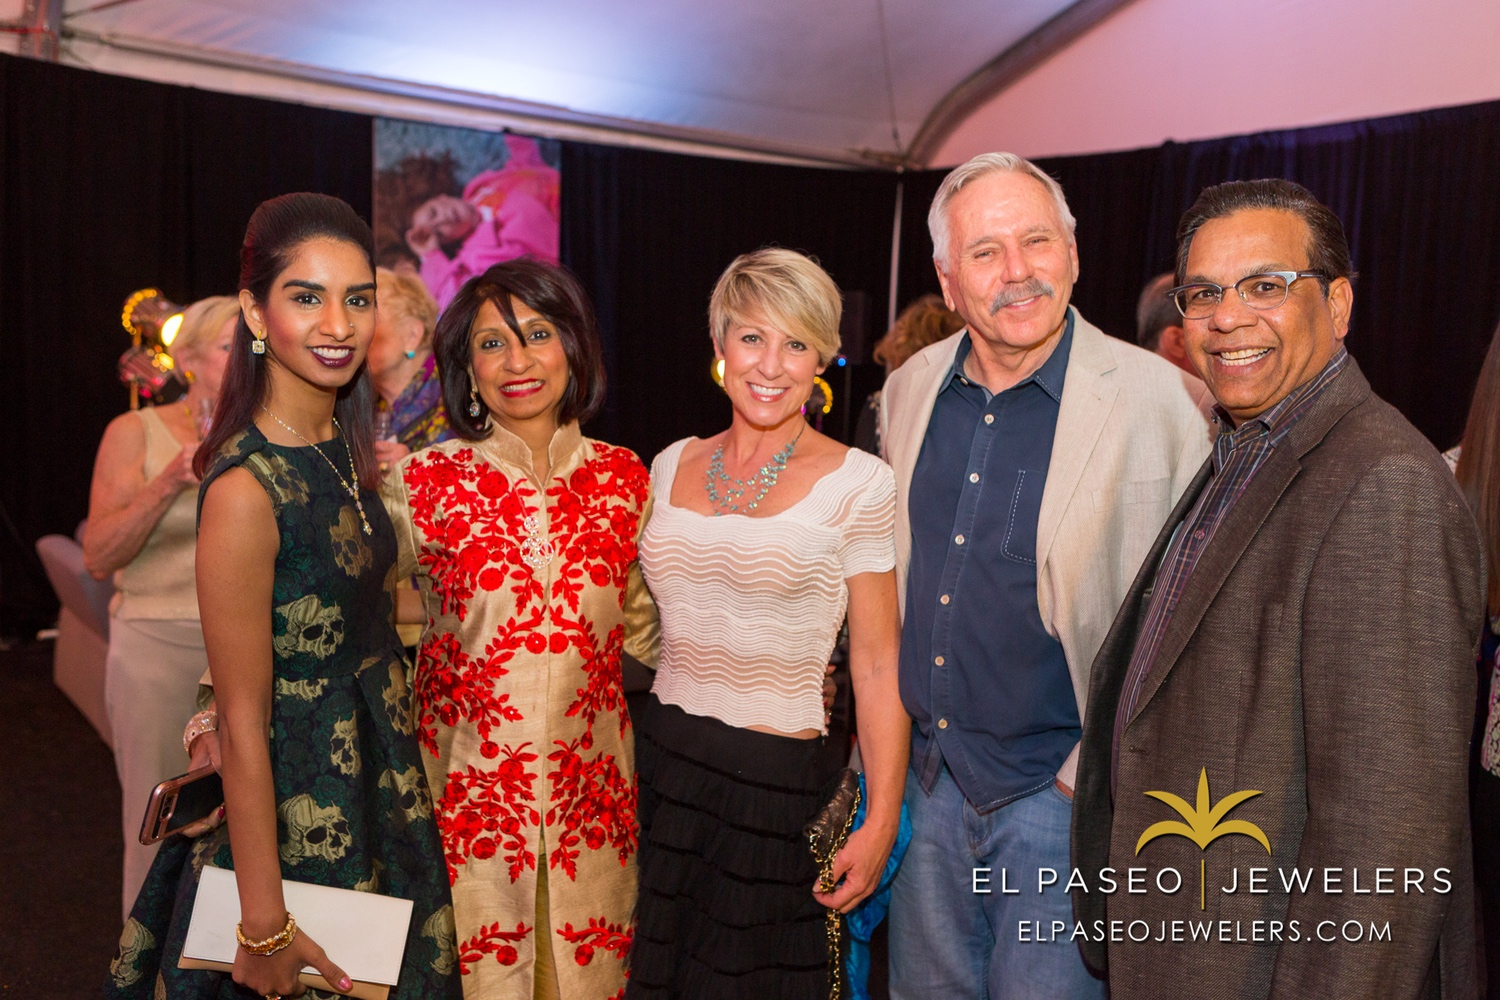 El Paseo Jewelers Fashion Week El Paseo – Day 7 – March 24th, 2017